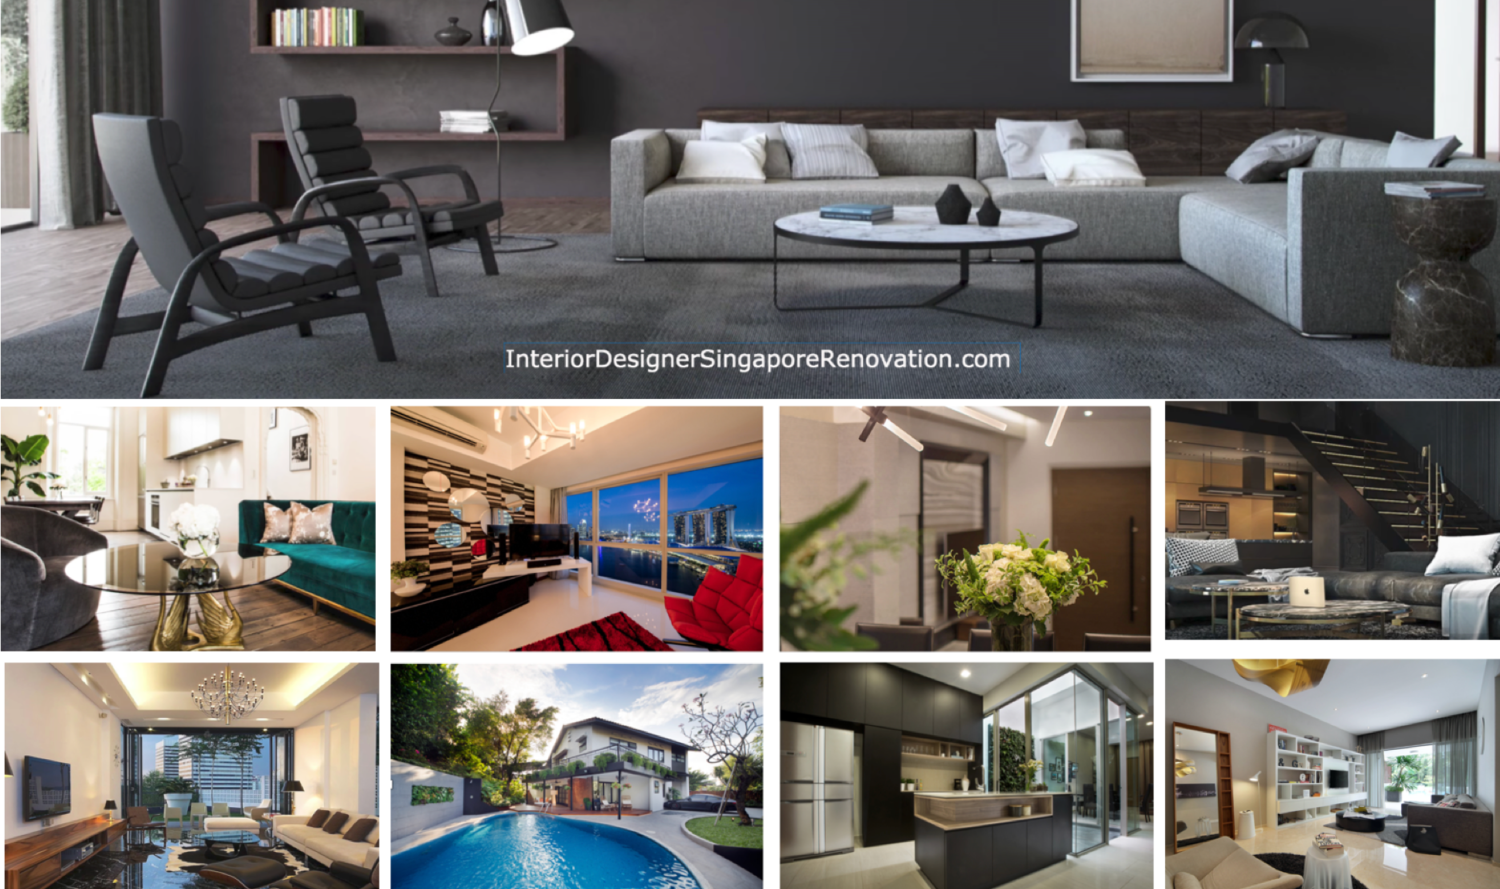 Best Interior Design Company Design top best interior designers in singapore interior design company/firm